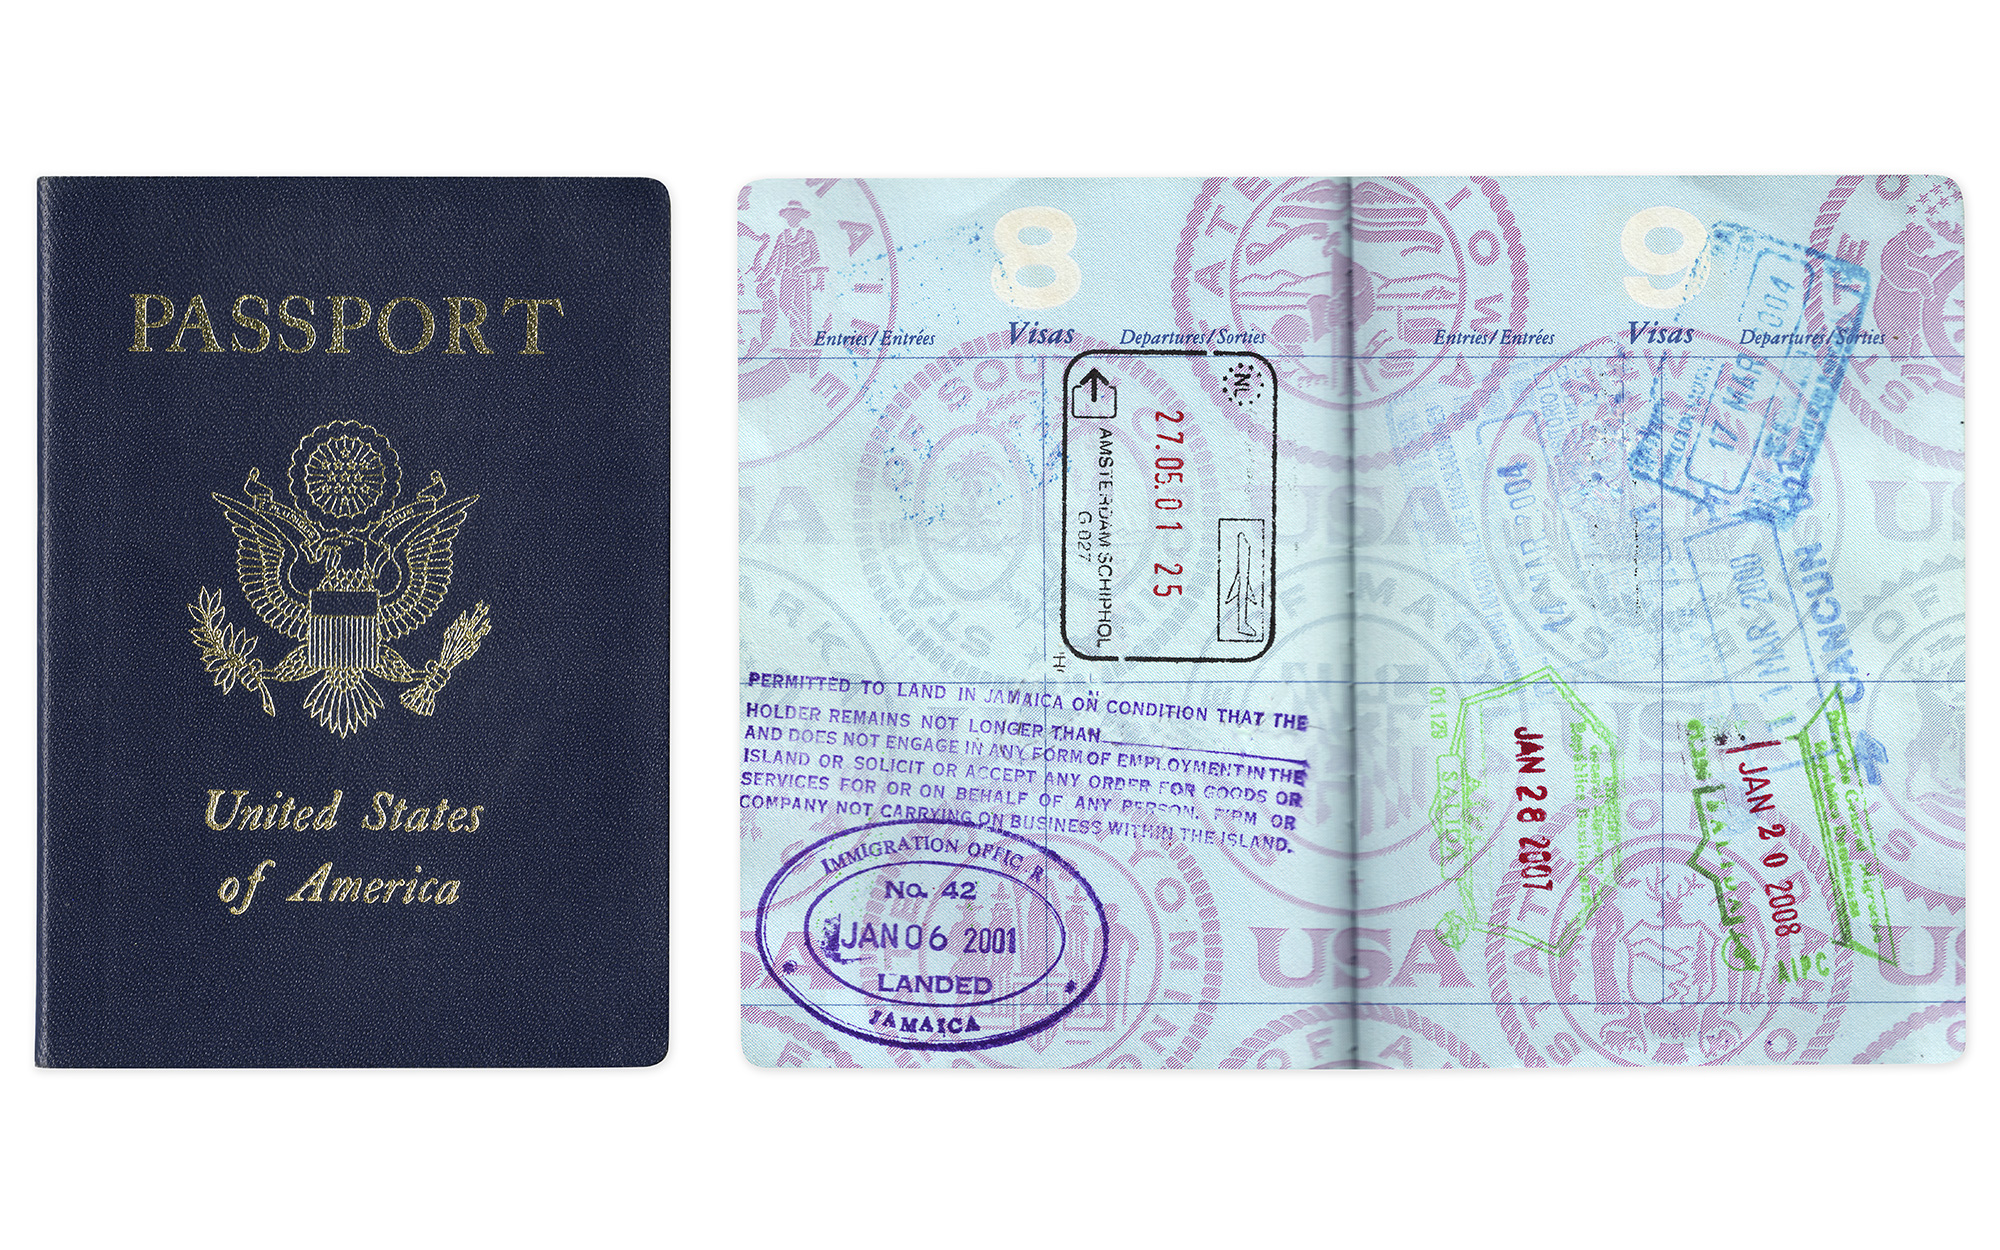 Passport Almost Full? You'll Probably Need to Get a Whole New One